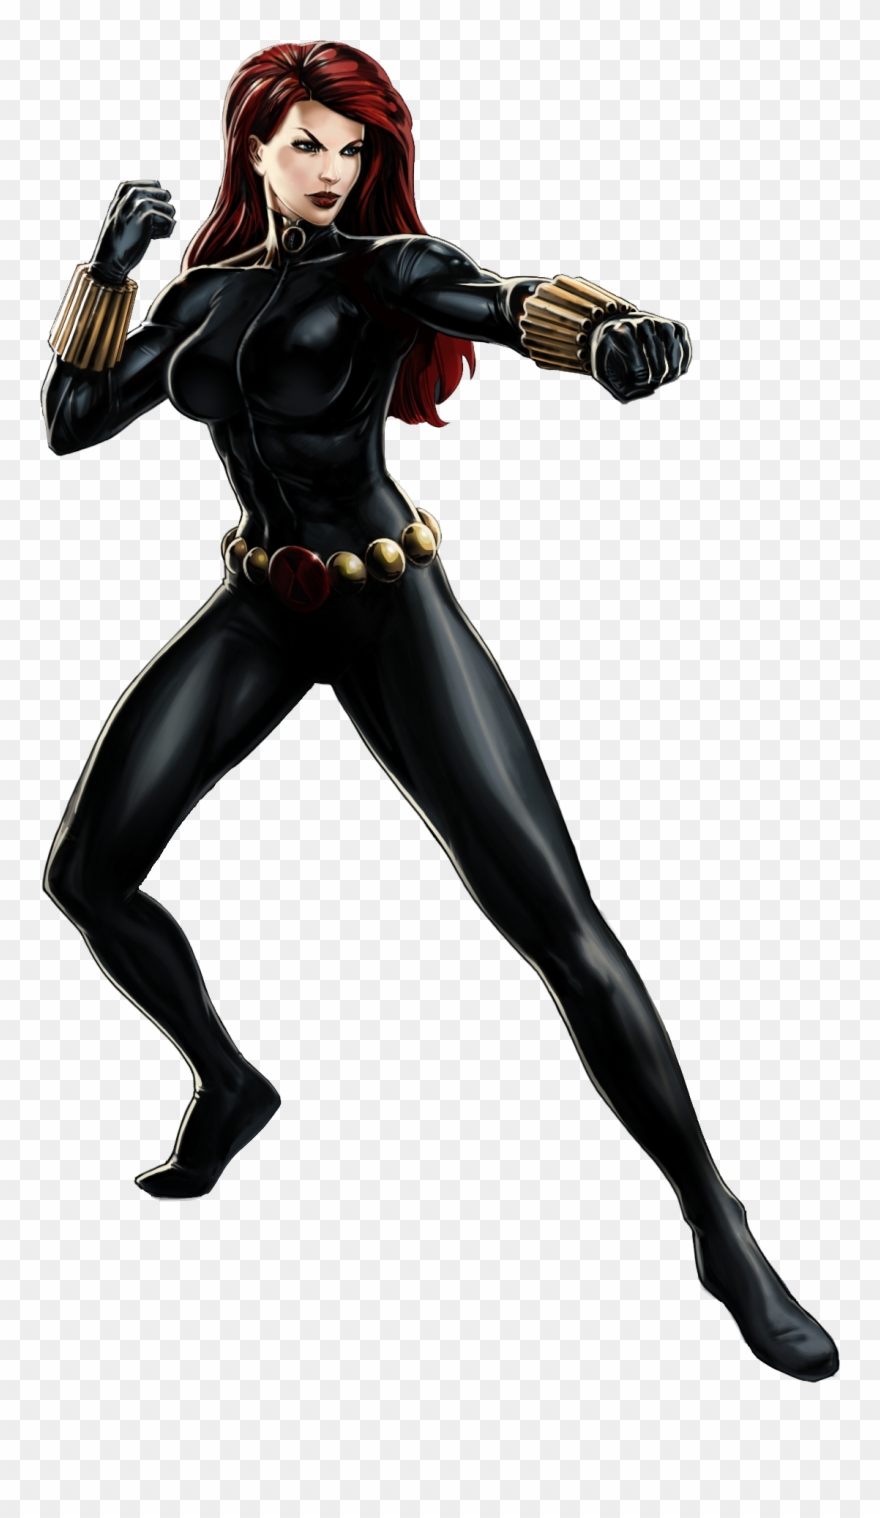 Black Widow Png Transparent Images.